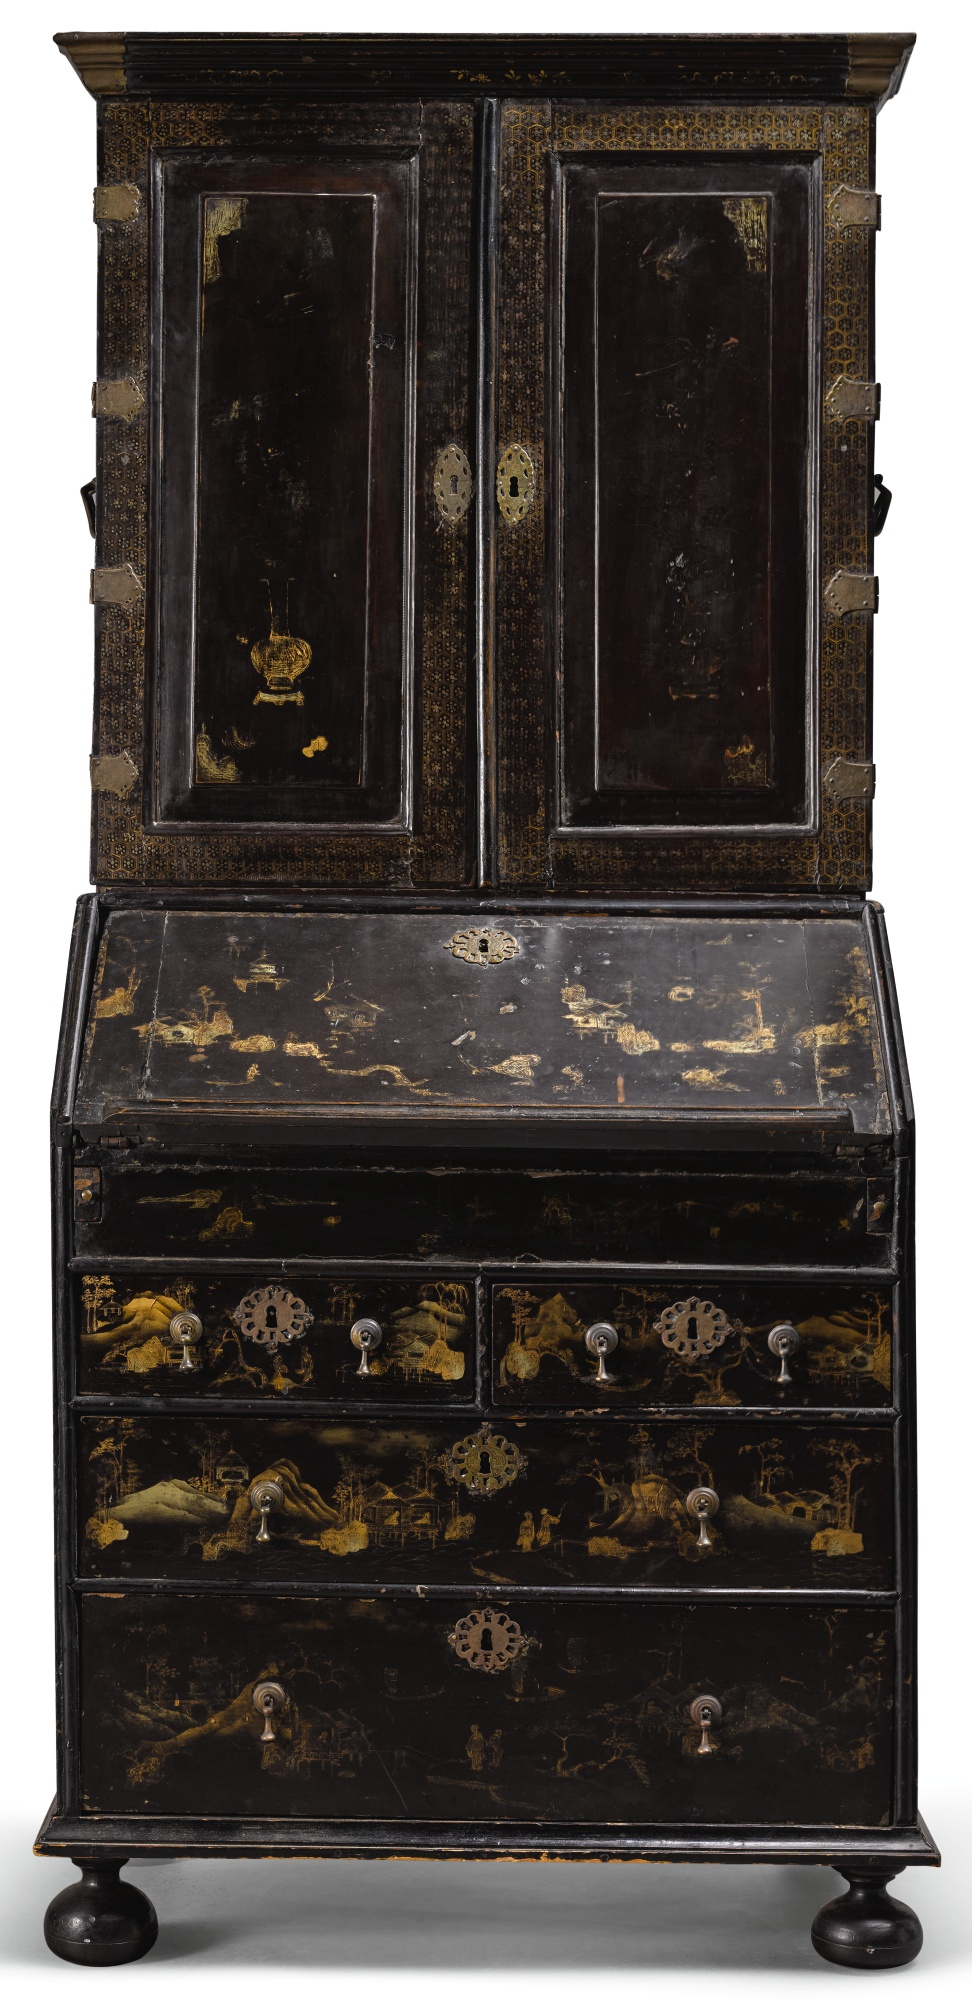 A Chinese Export Lacquered Bureau Bookcase First Quarter 18th Century Style Private